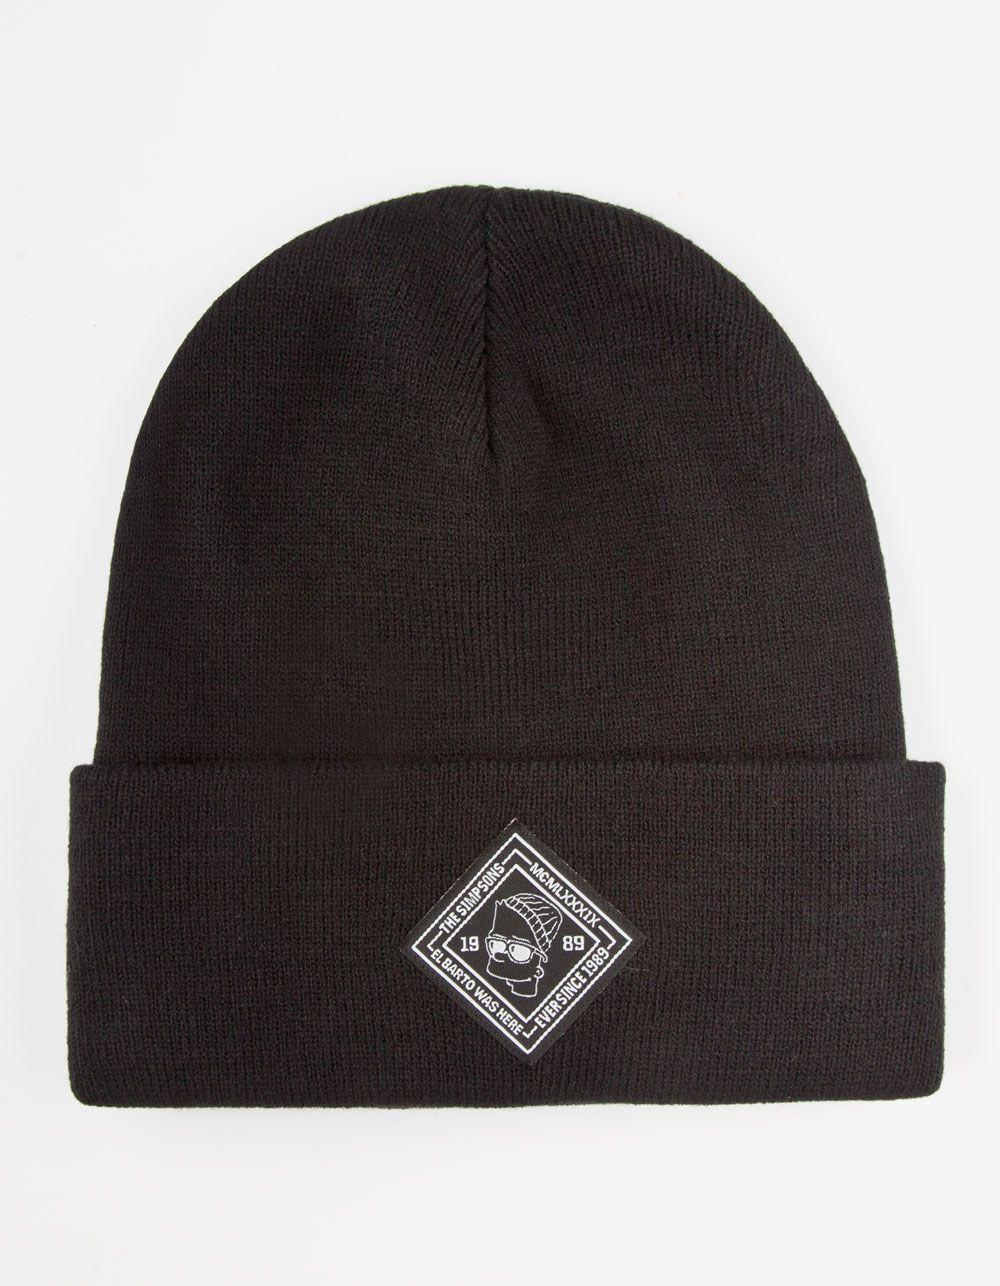 0fed4839d8e22 Neff x The Simpsons Troublemaker beanie. El Barto patch on front. Small NEFF  tag on back. Imported.